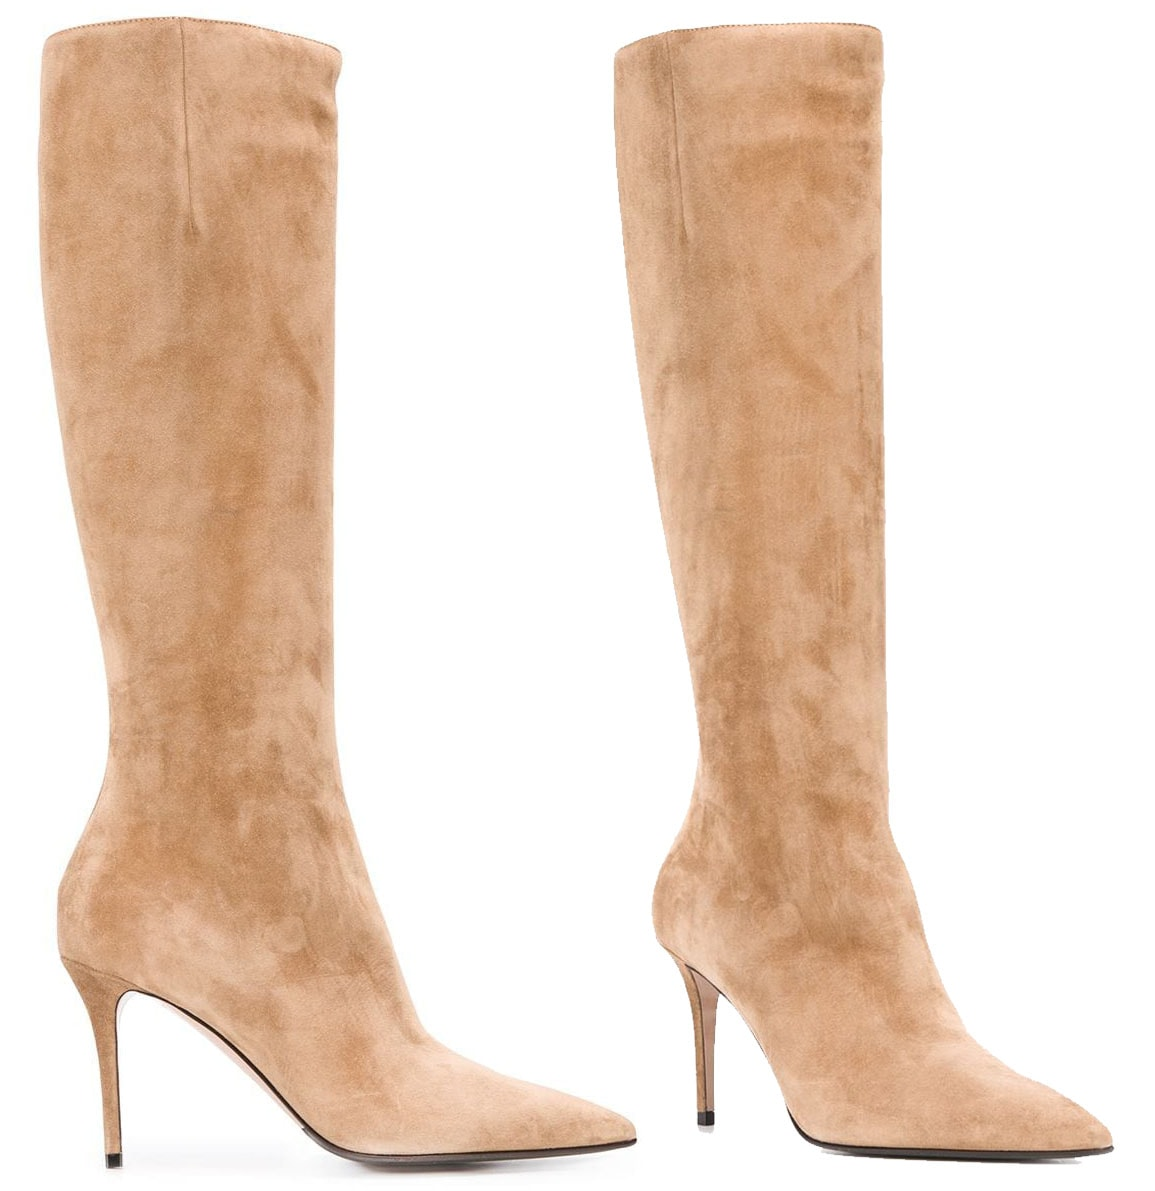 Add height to your look with these Le Silla Eva stiletto boots in leg-lengthening neutral tone